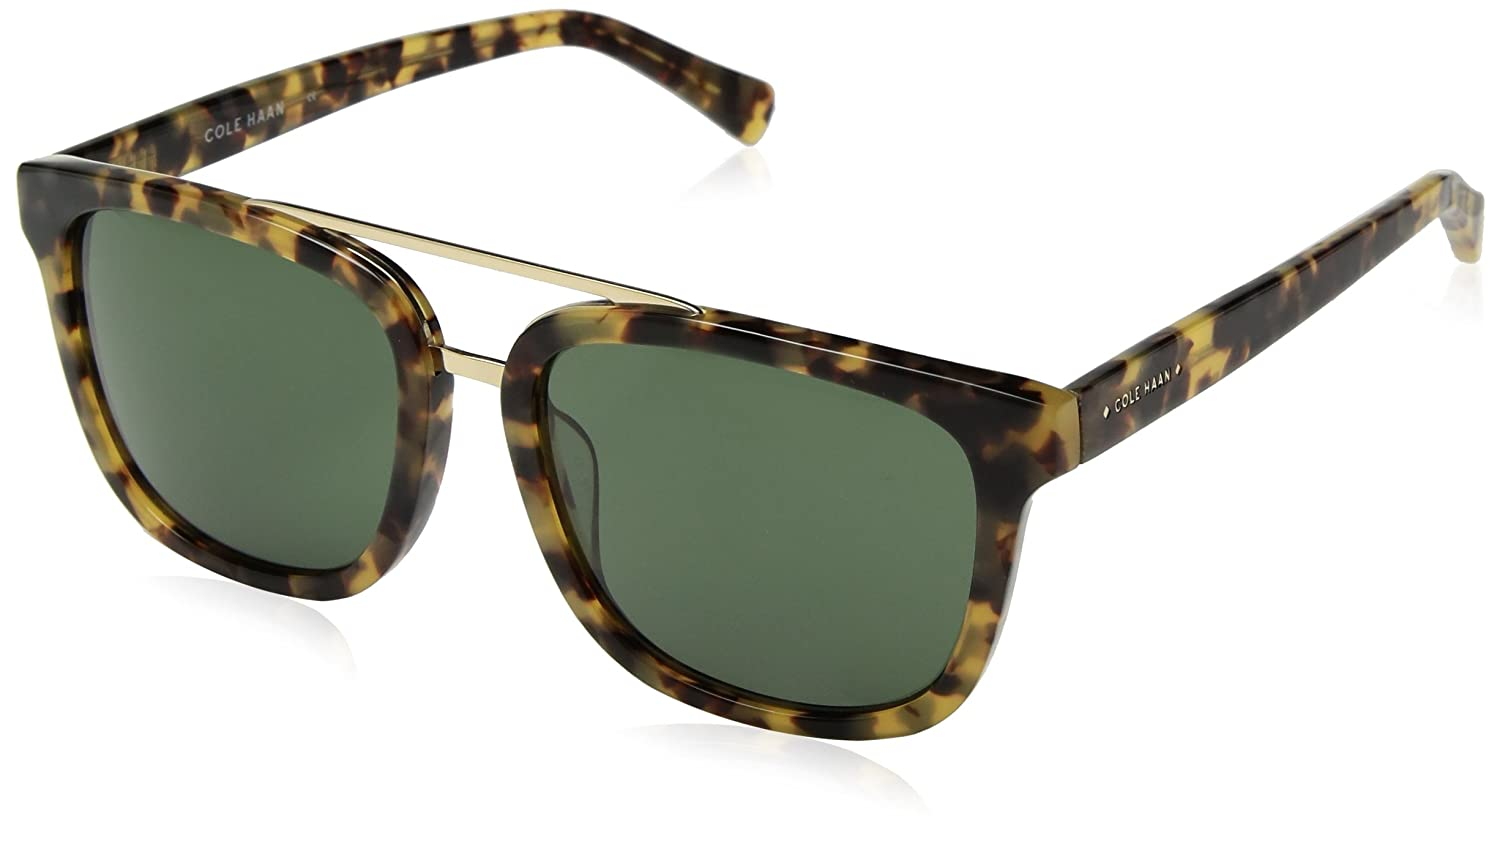 2092a9921d3aa Amazon.com  Cole Haan Men s Ch6012 Plastic Square Sunglasses